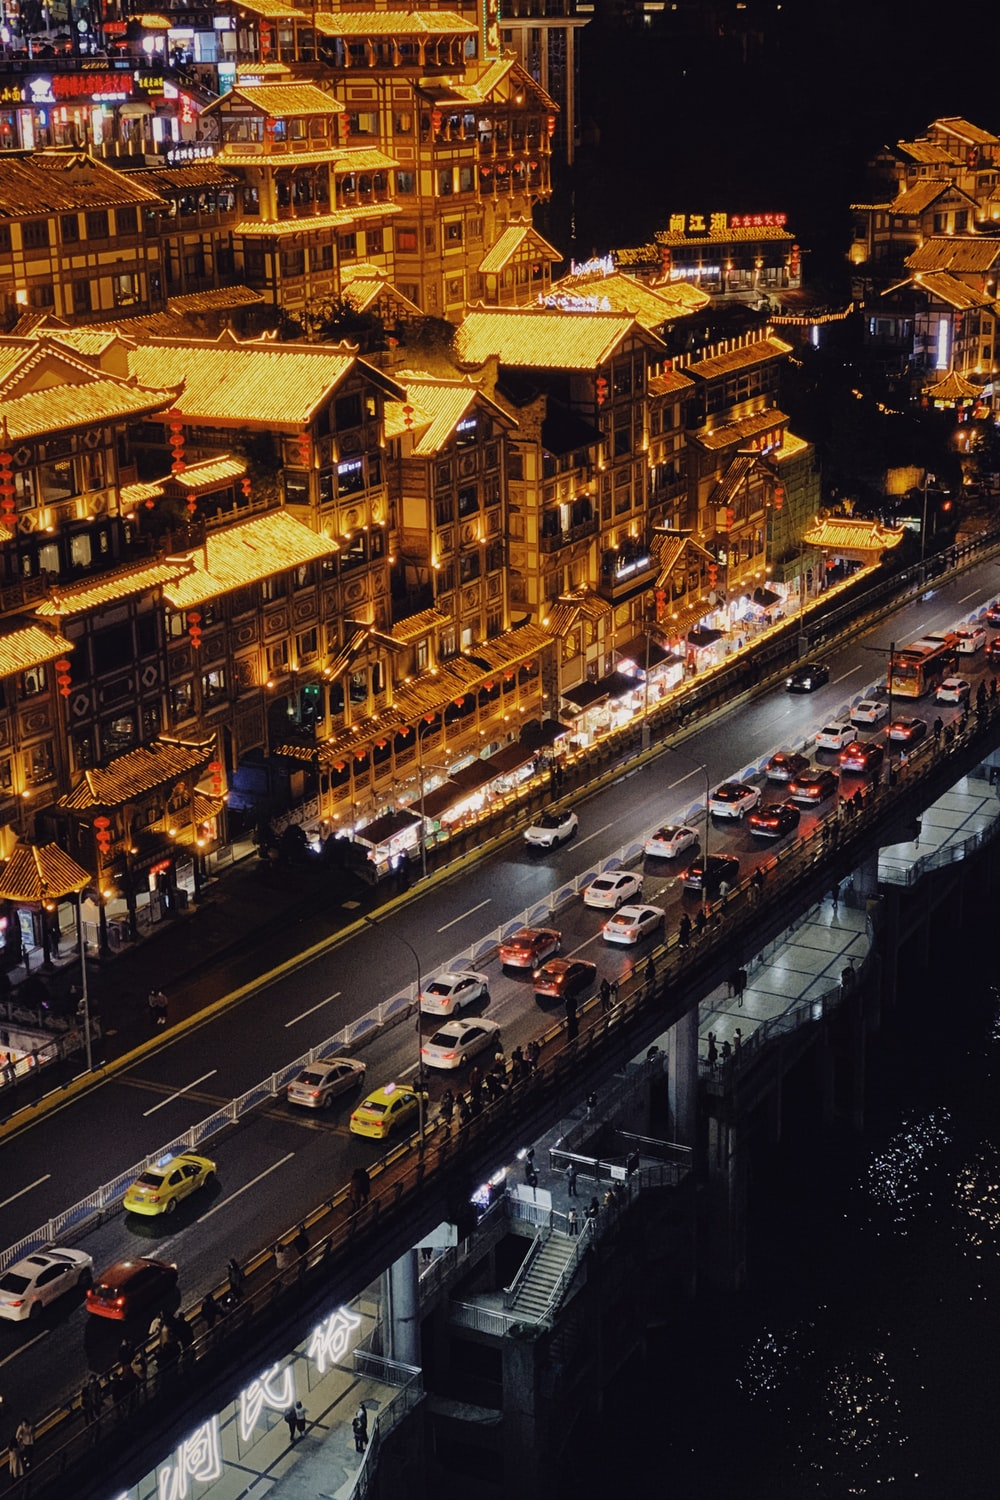 cars on road near buildings during night time